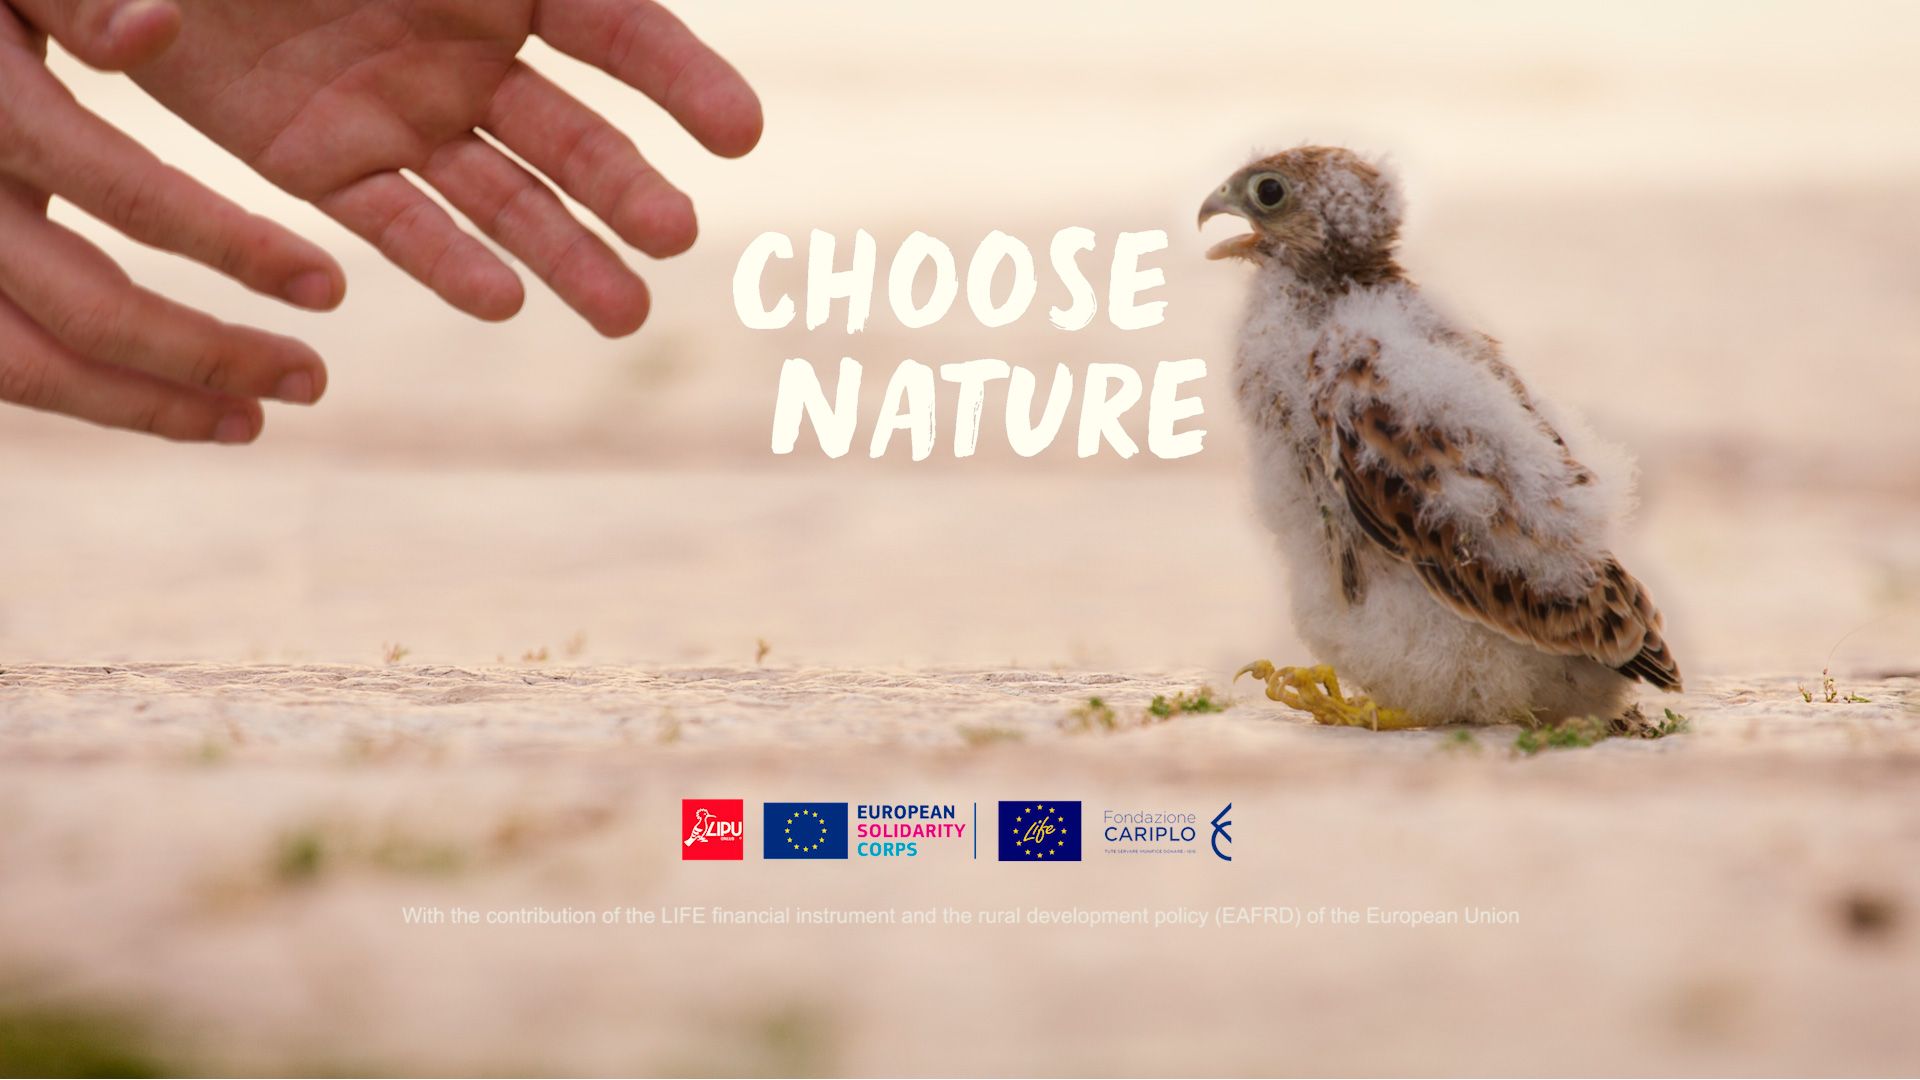 Life Choose Nature